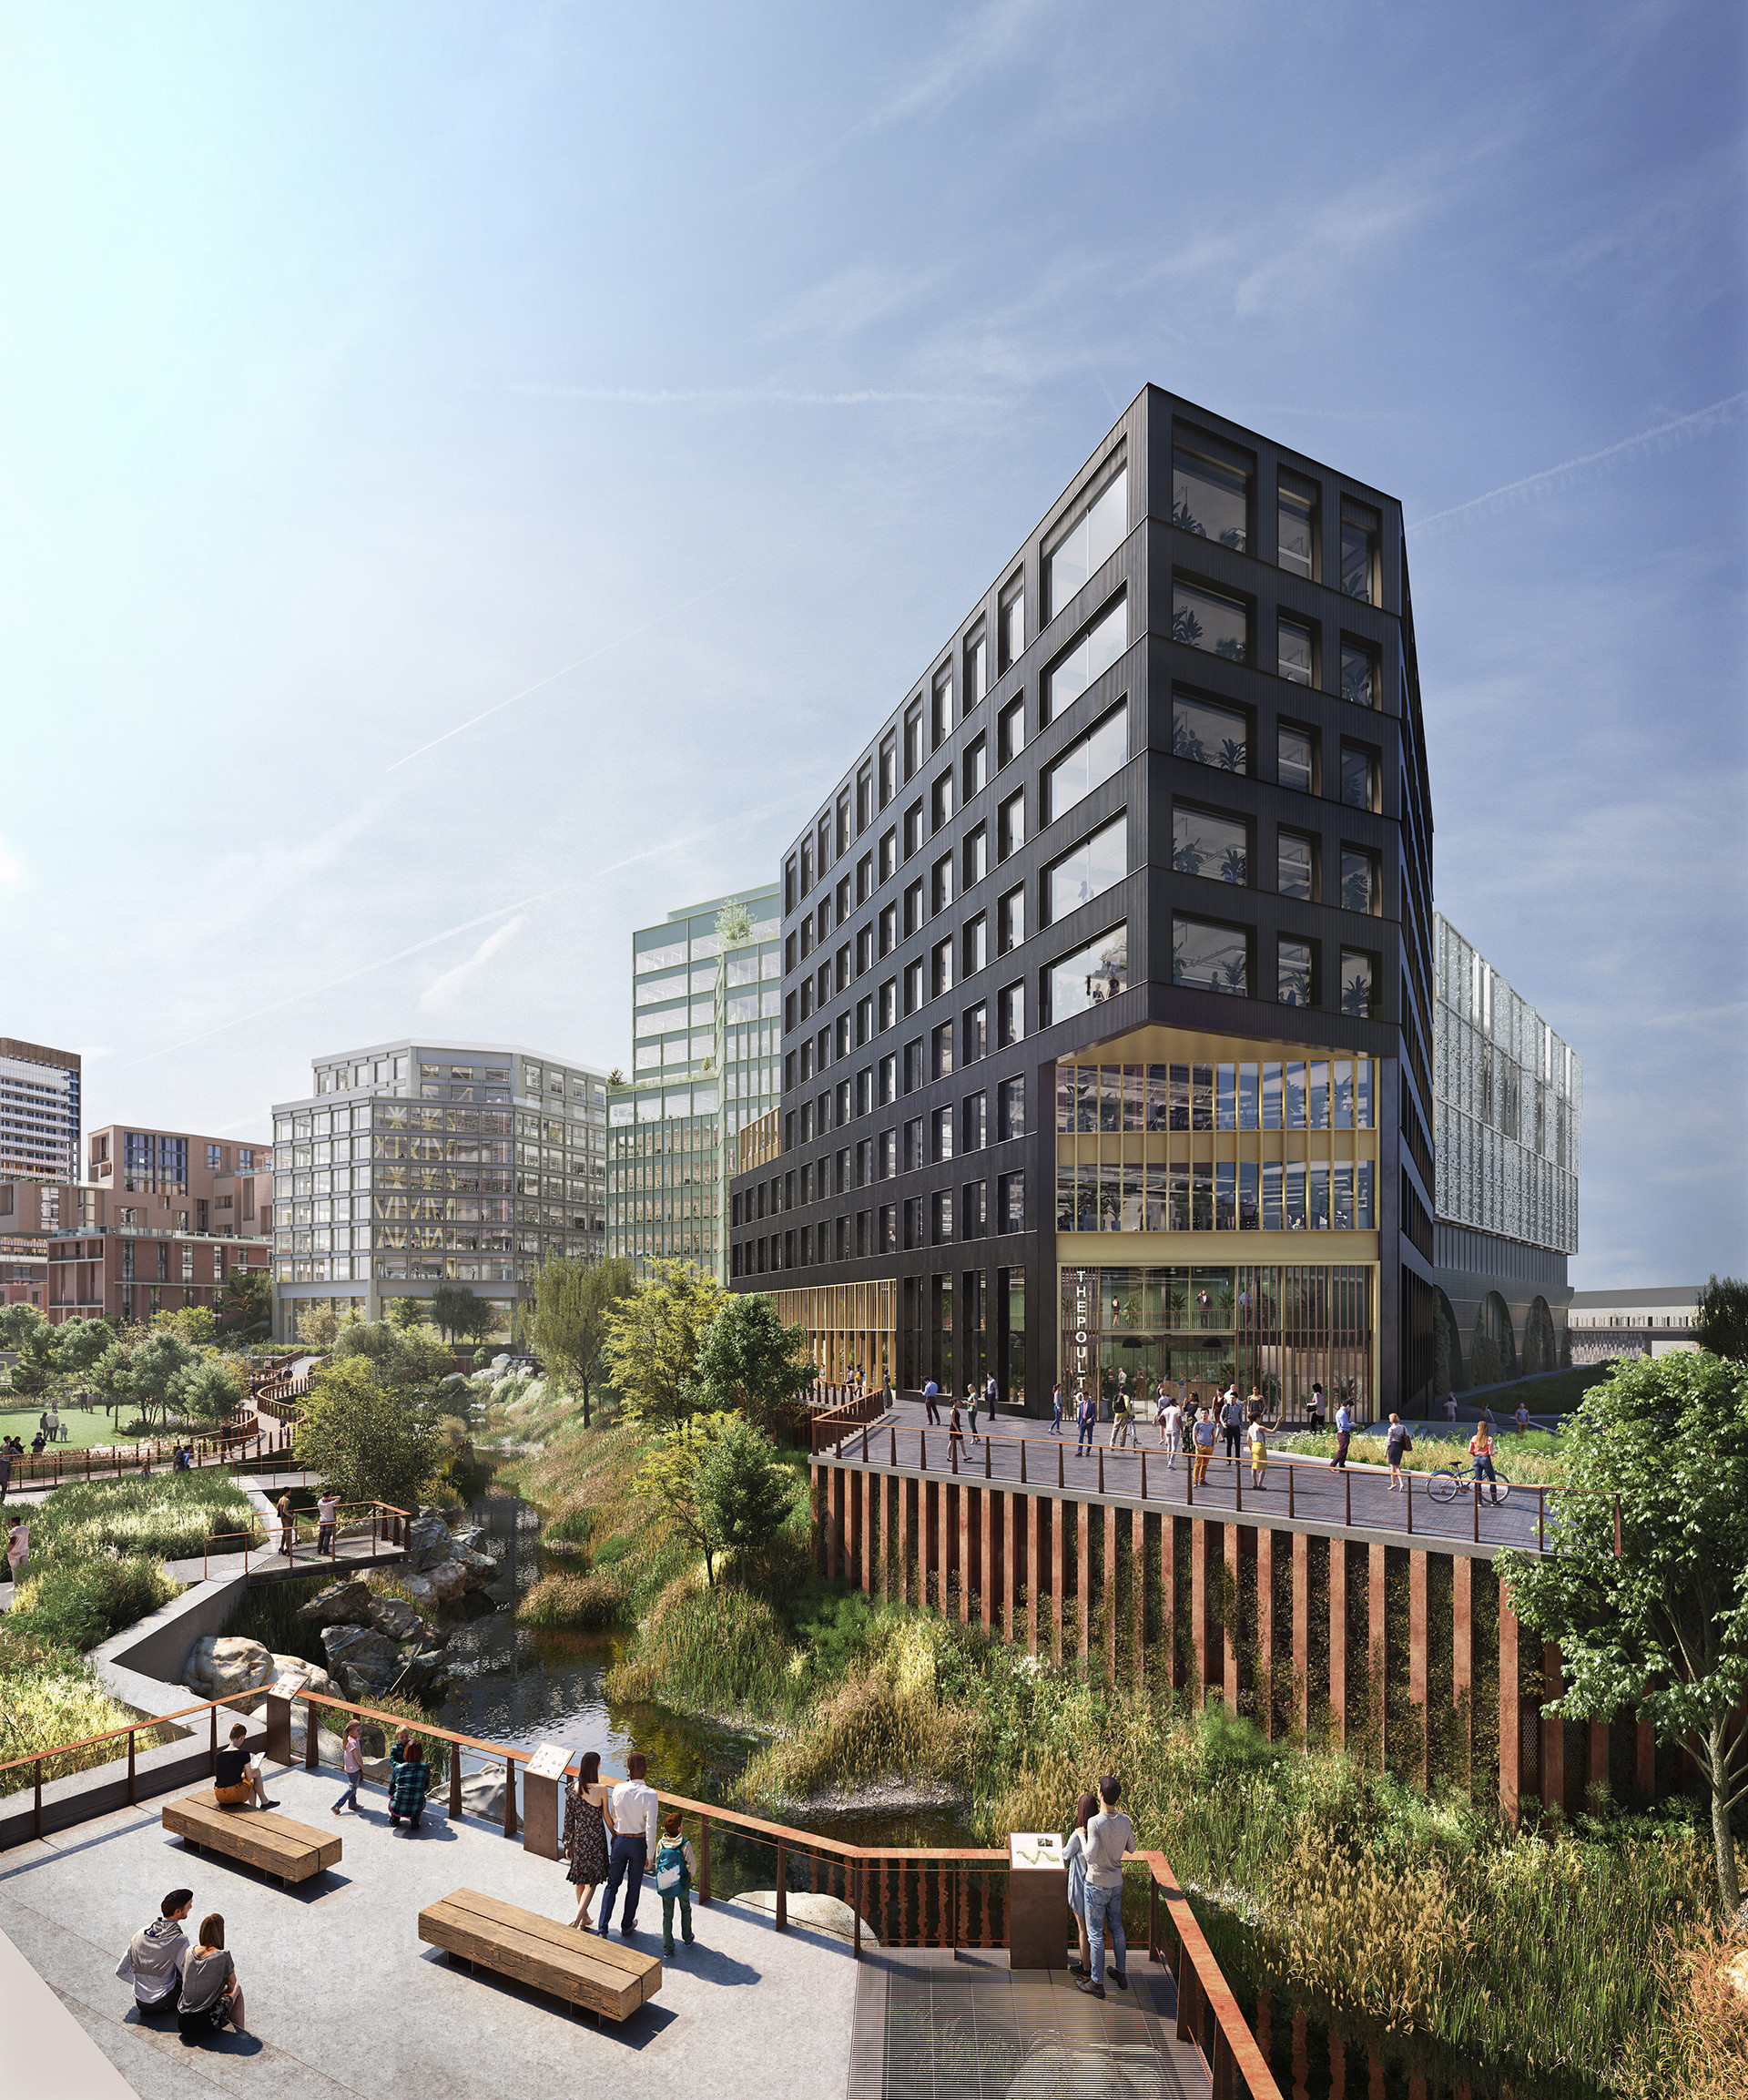 Digital visualisation of the future Mayfield development and park